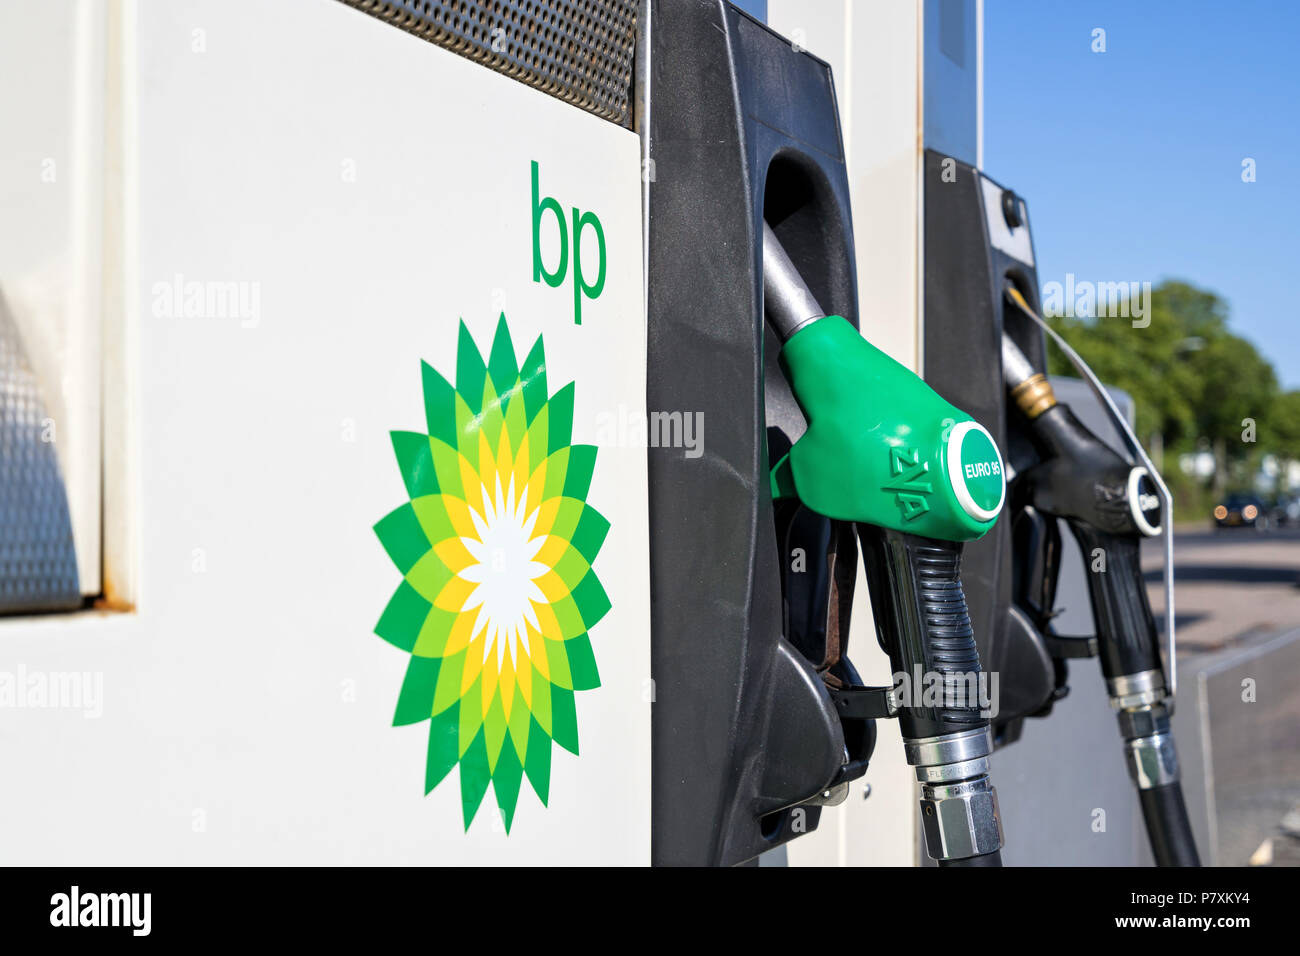 Bp Gas Station Stock Photos & Bp Gas Station Stock Images - Alamy